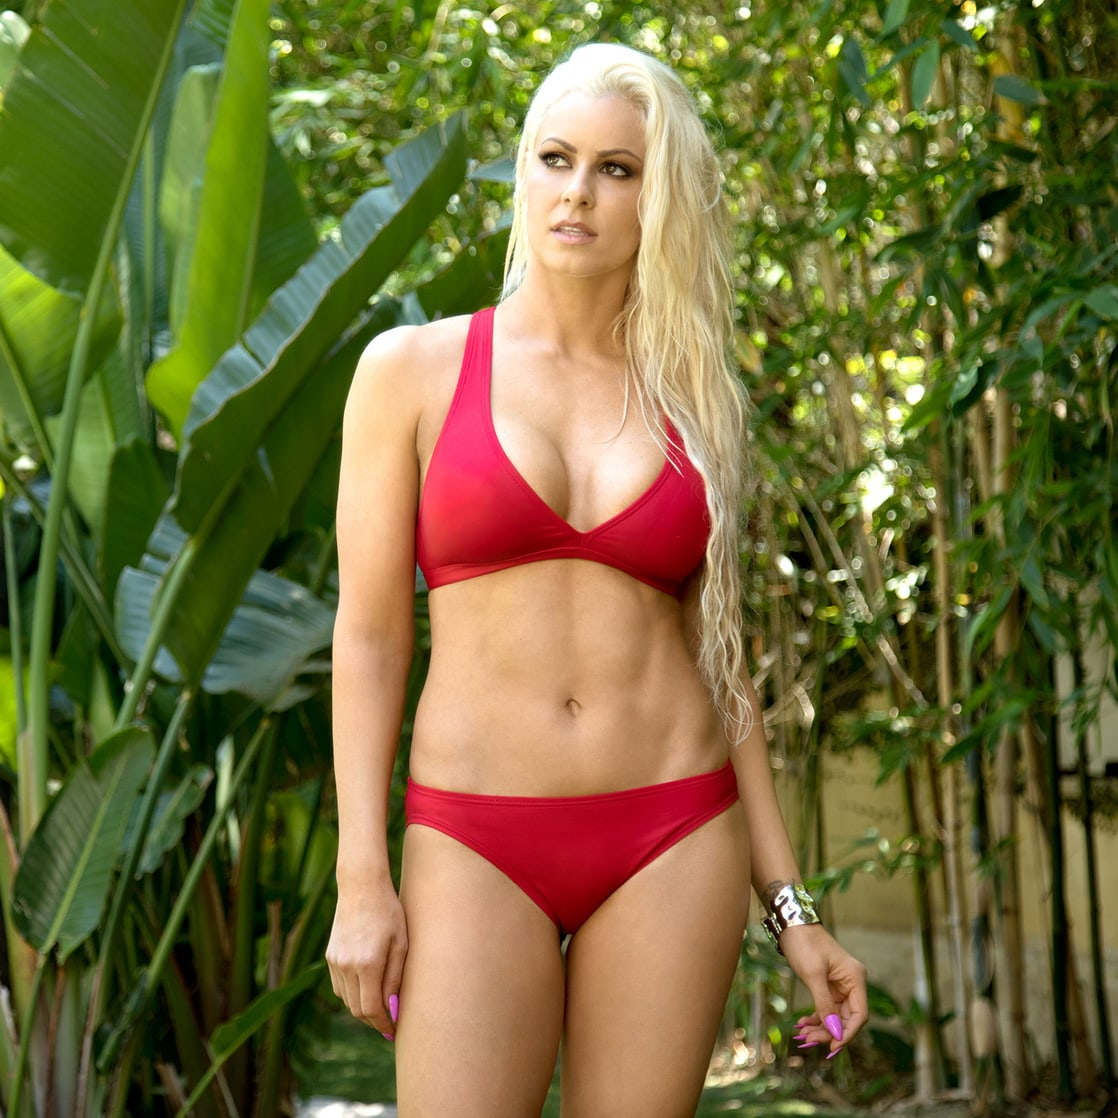 Maryse naked ass and boobs was registered